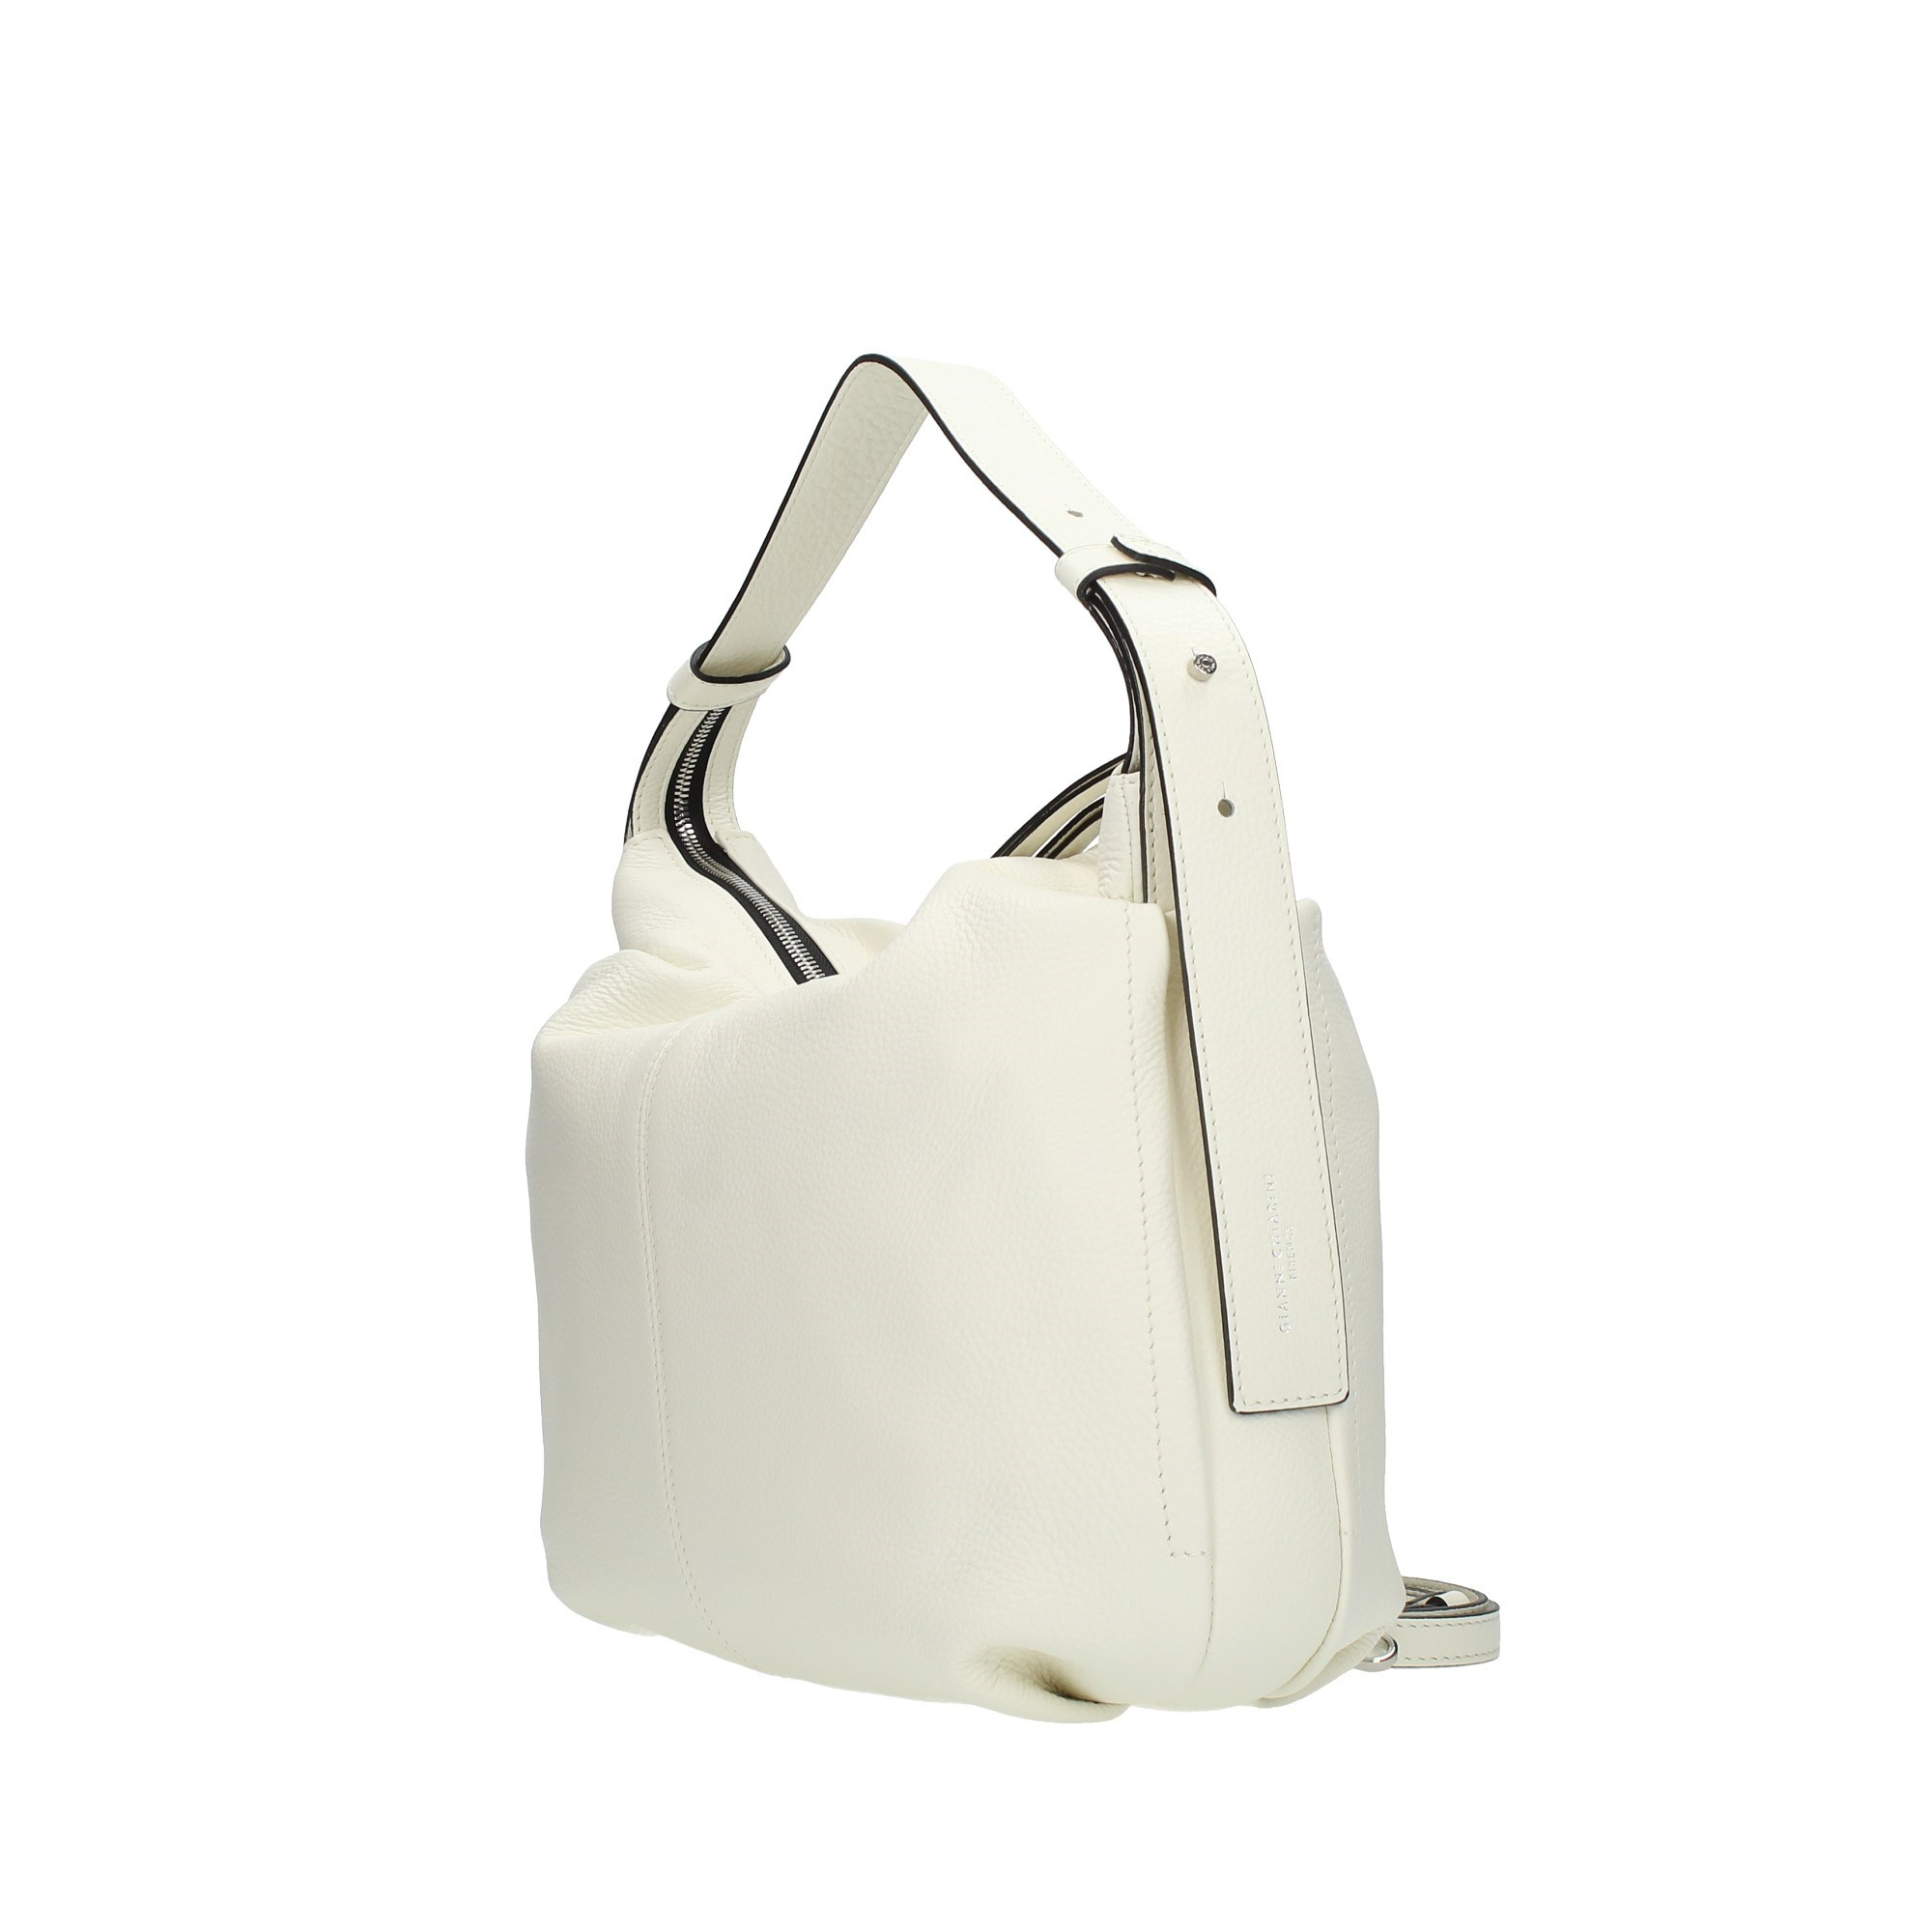 Gianni Chiarini Accessories Women Shoulder Bags White BS8456 STSR